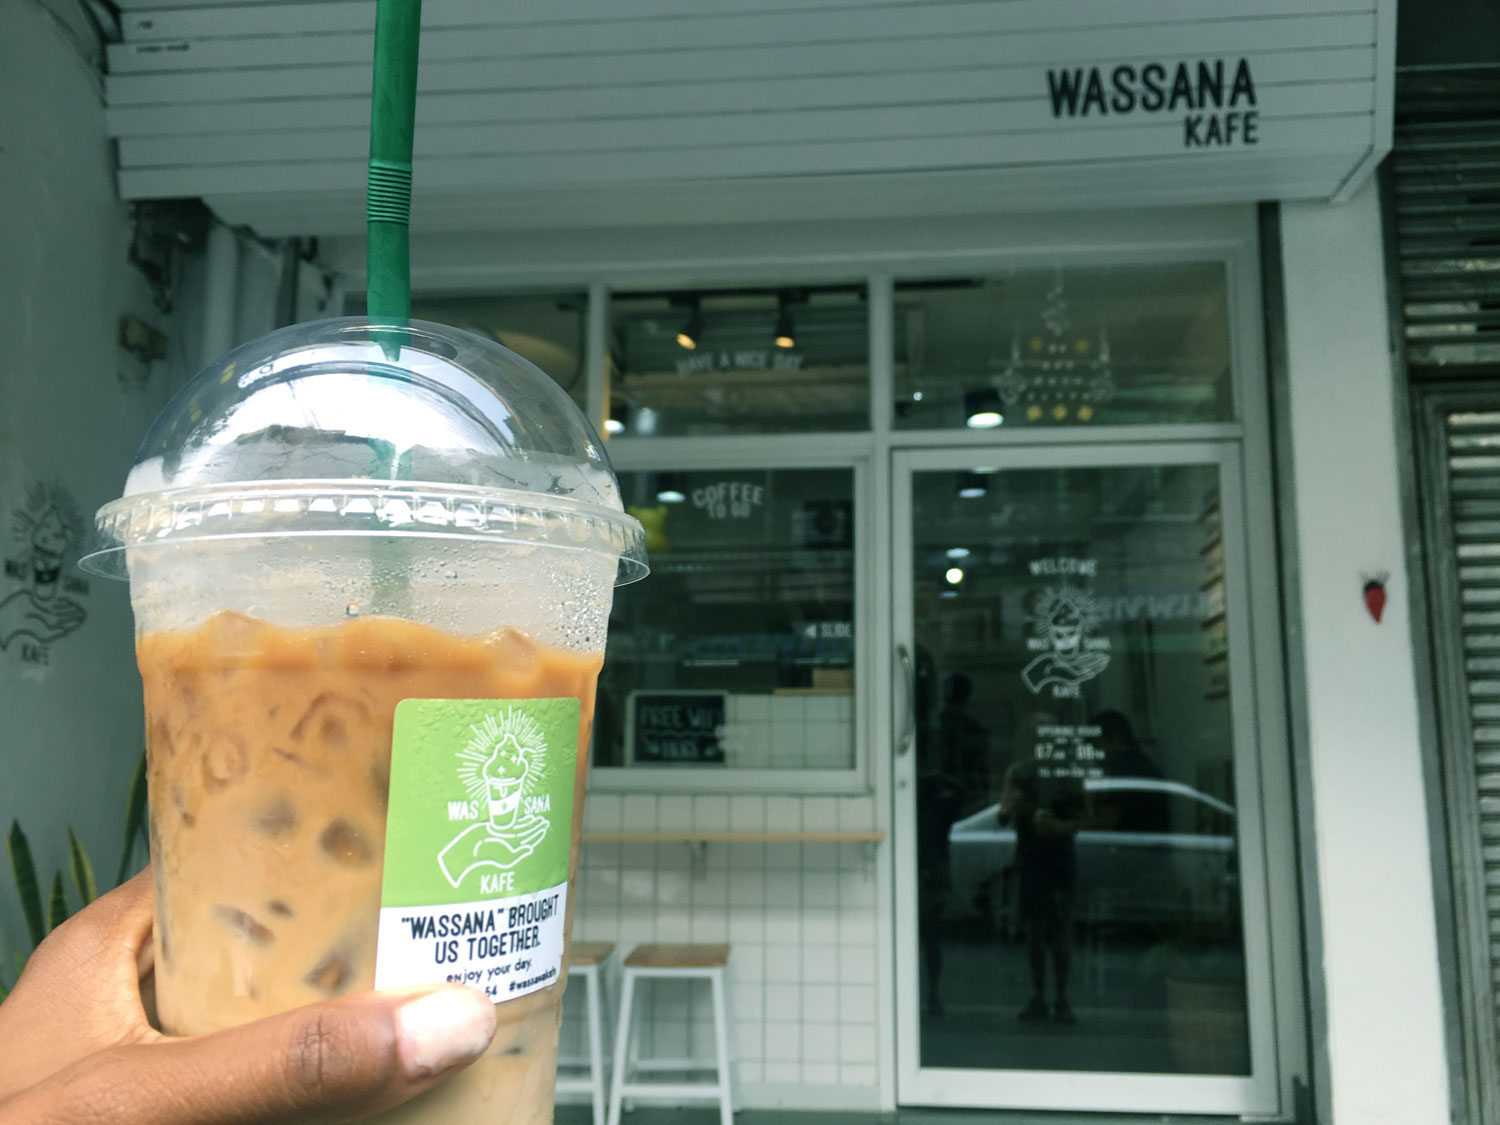 Wassana Kafe in Bangkok - Plastic Cups for Coffee :(